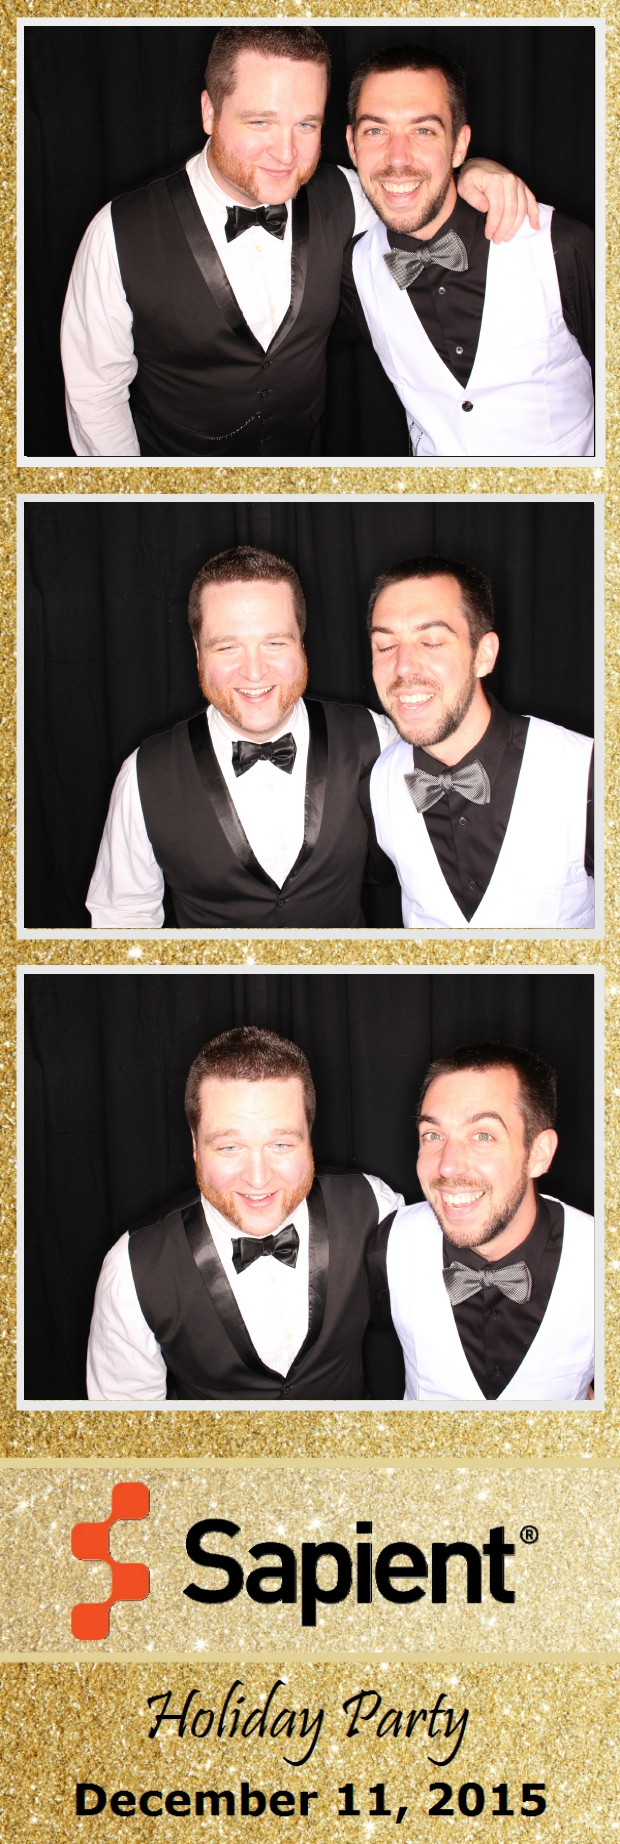 Guest House Events Photo Booth Sapient Holiday Party (18).jpg